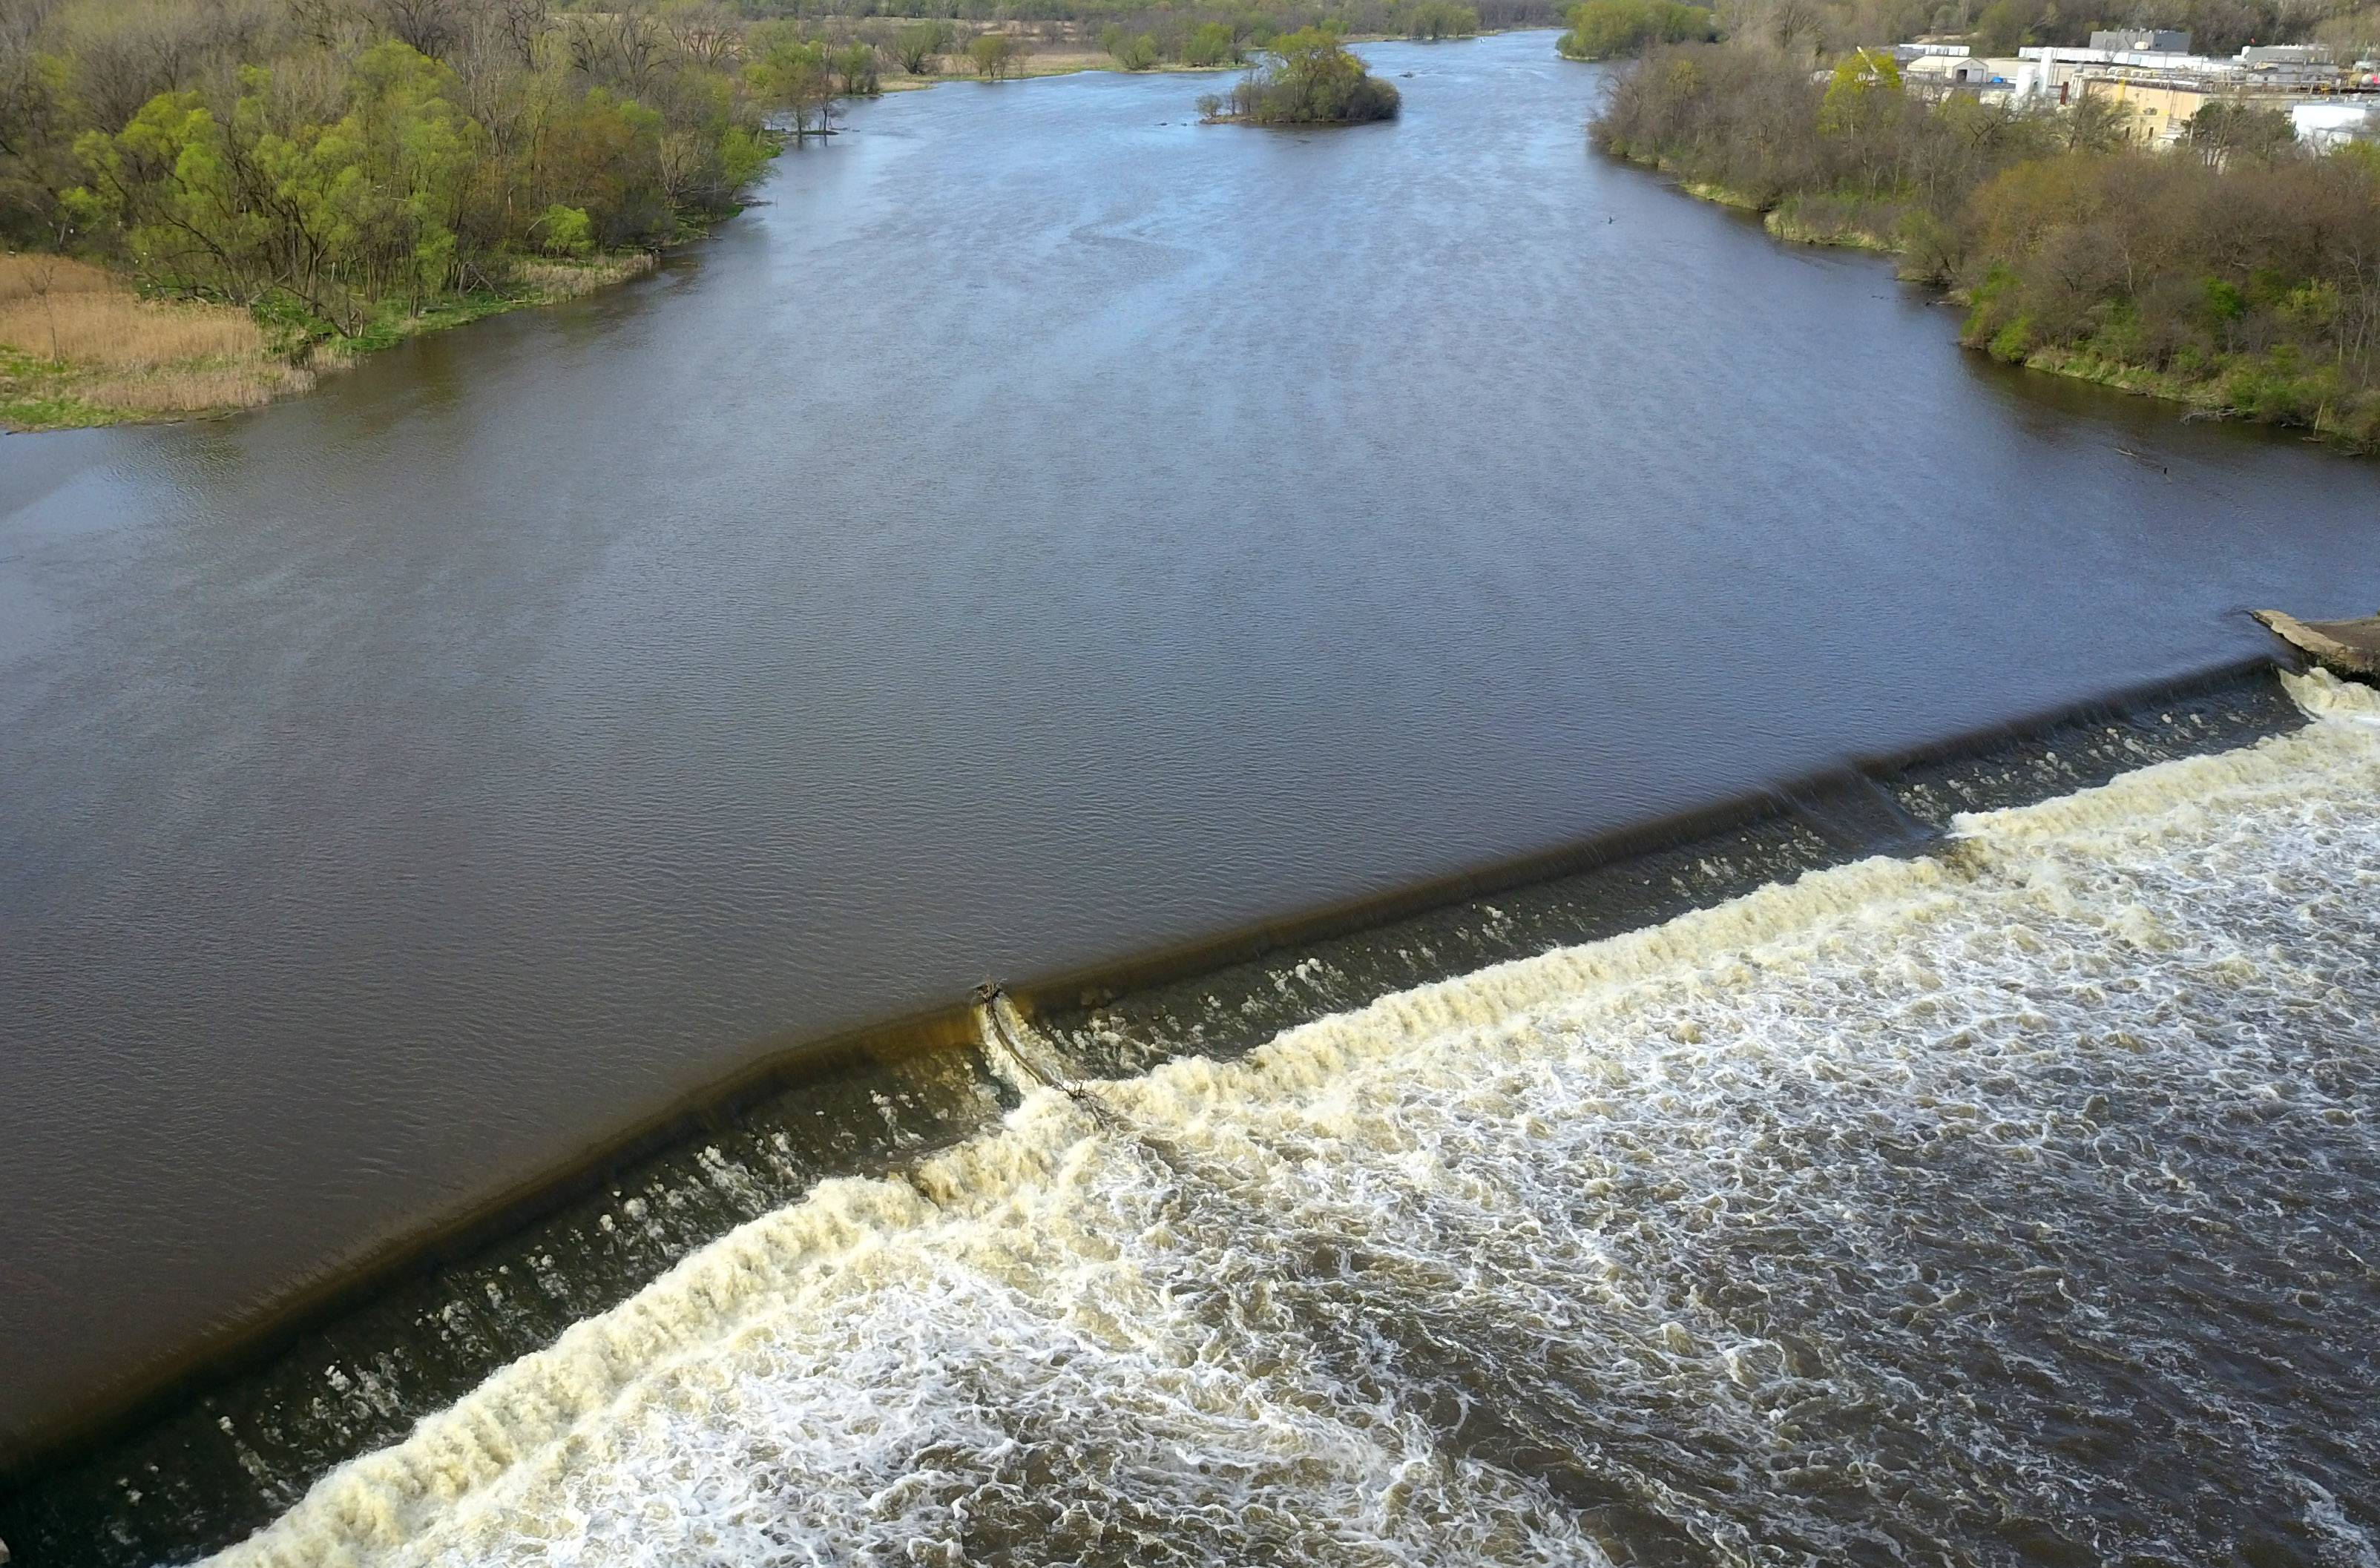 The Carpentersville dam, shown in this Daily Herald drone photo, is one of many on the Fox River experts say should be removed.